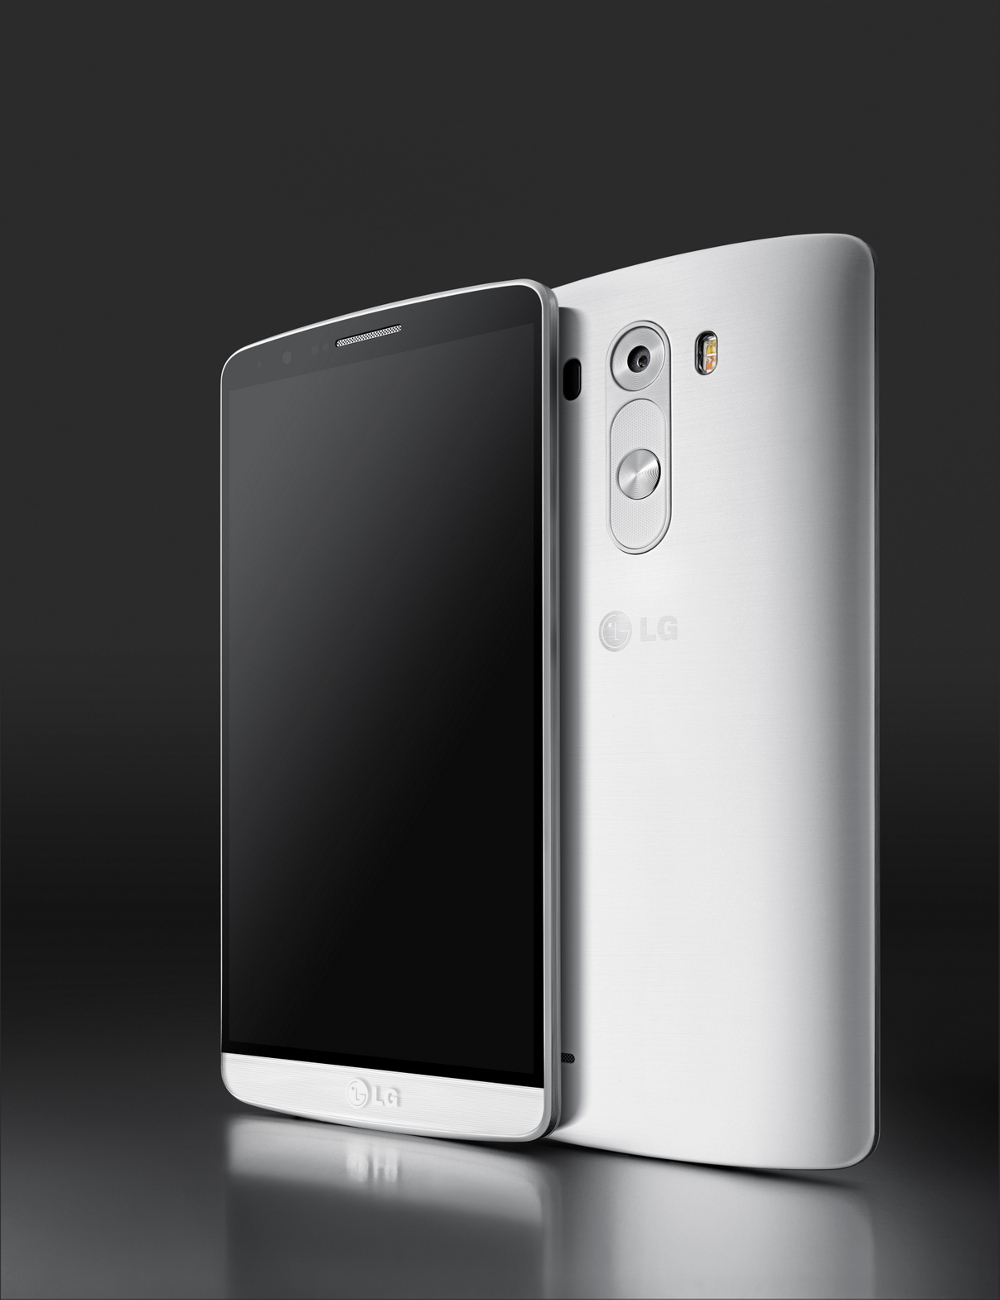 LG-G3-all-the-official-images (2)